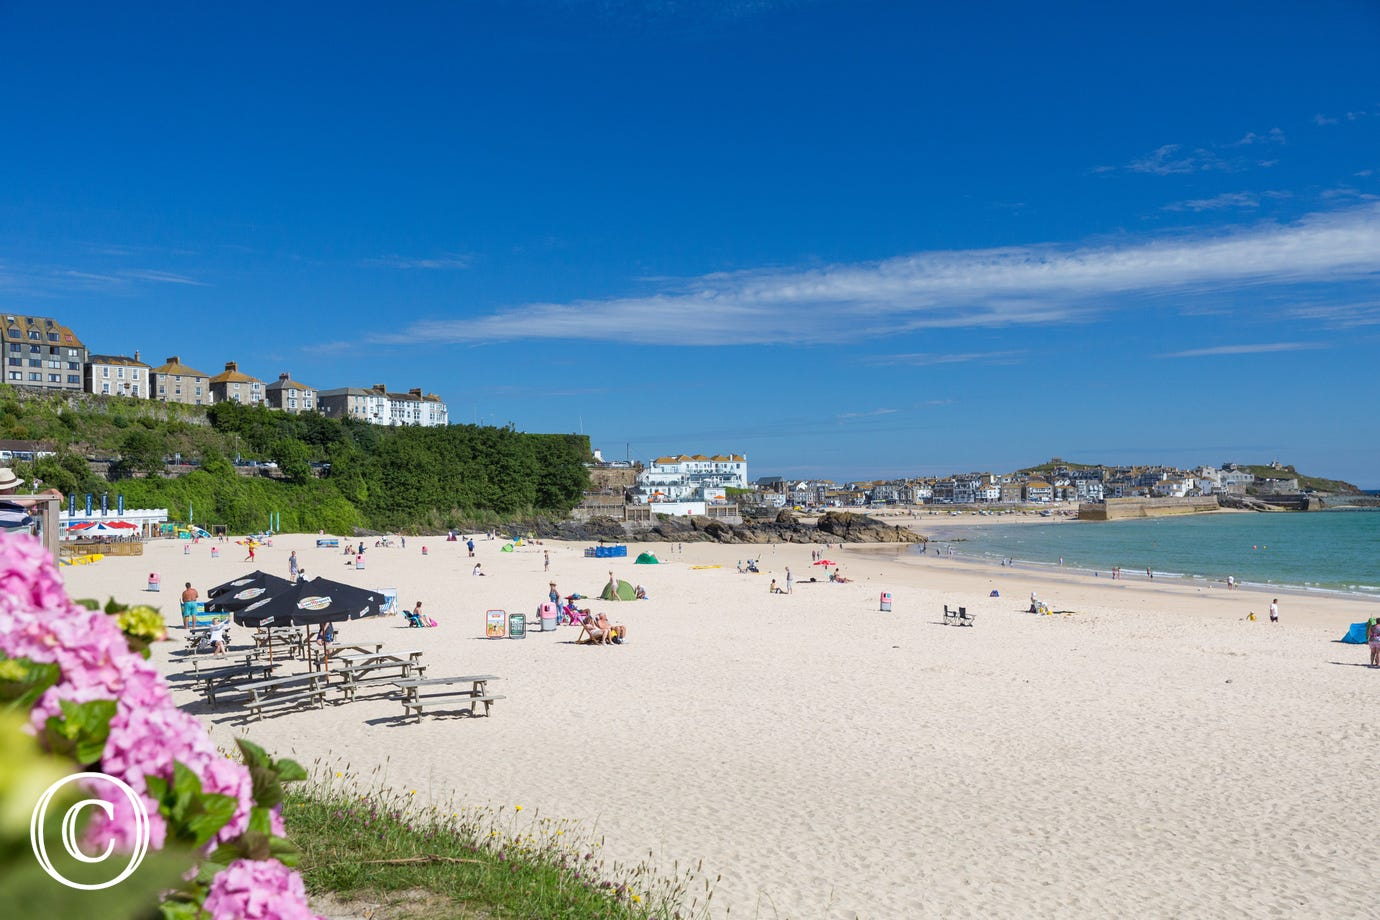 Just a 5 minute walk to Porthminster Beach